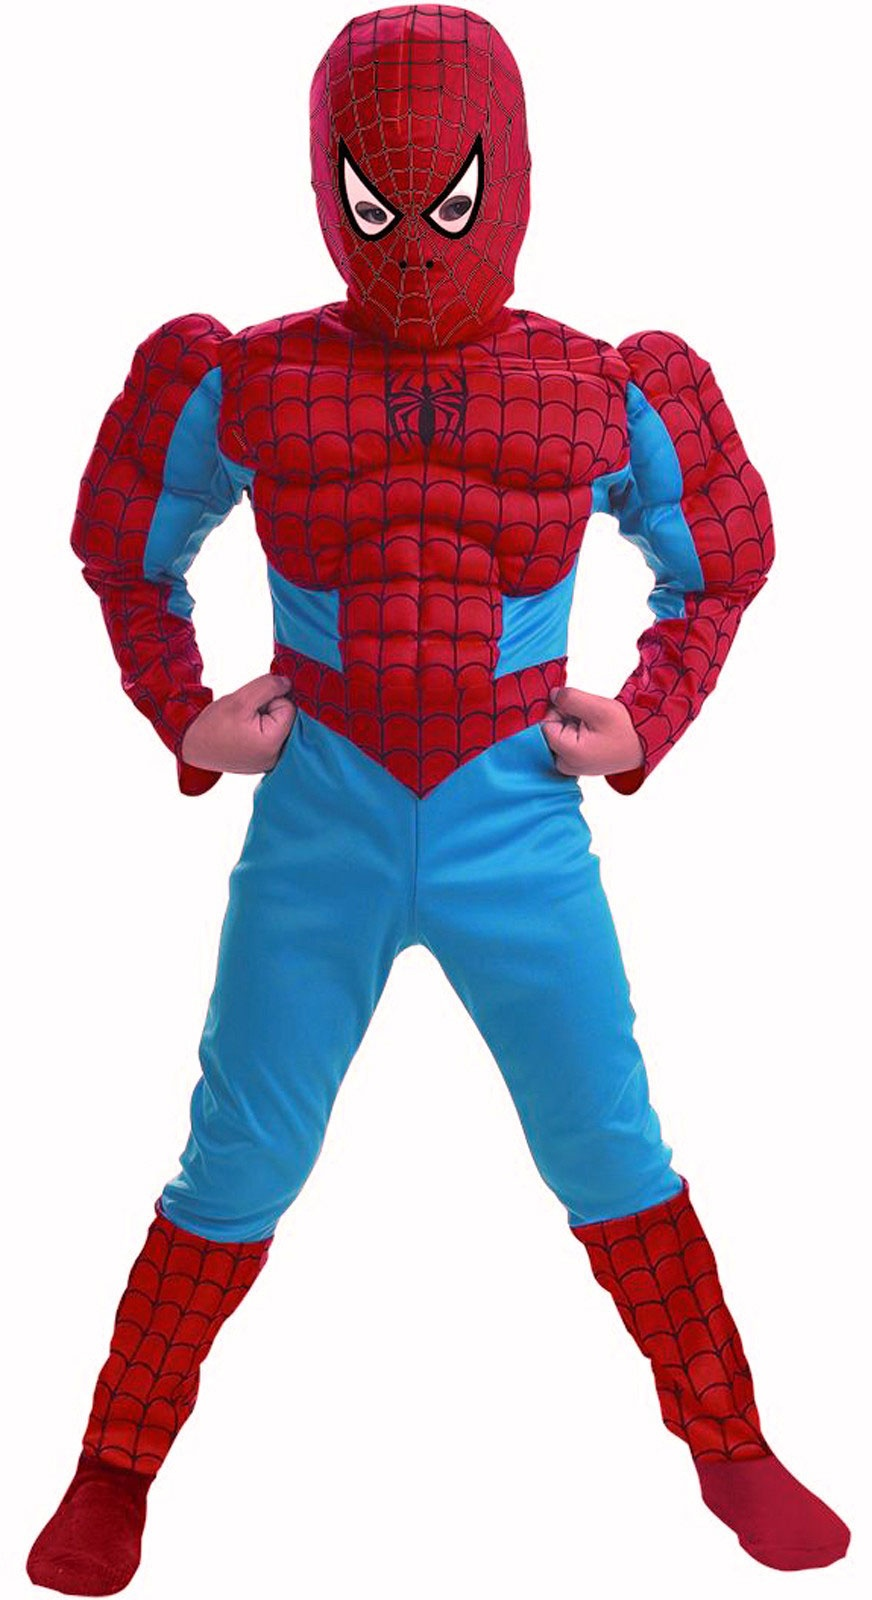 The Kids Spider-Man Homecoming Spiderman Costume is the perfect Halloween costume for you. Show off your Boys costume and impress your friends with this top quality selection from Costume 5/5(1).